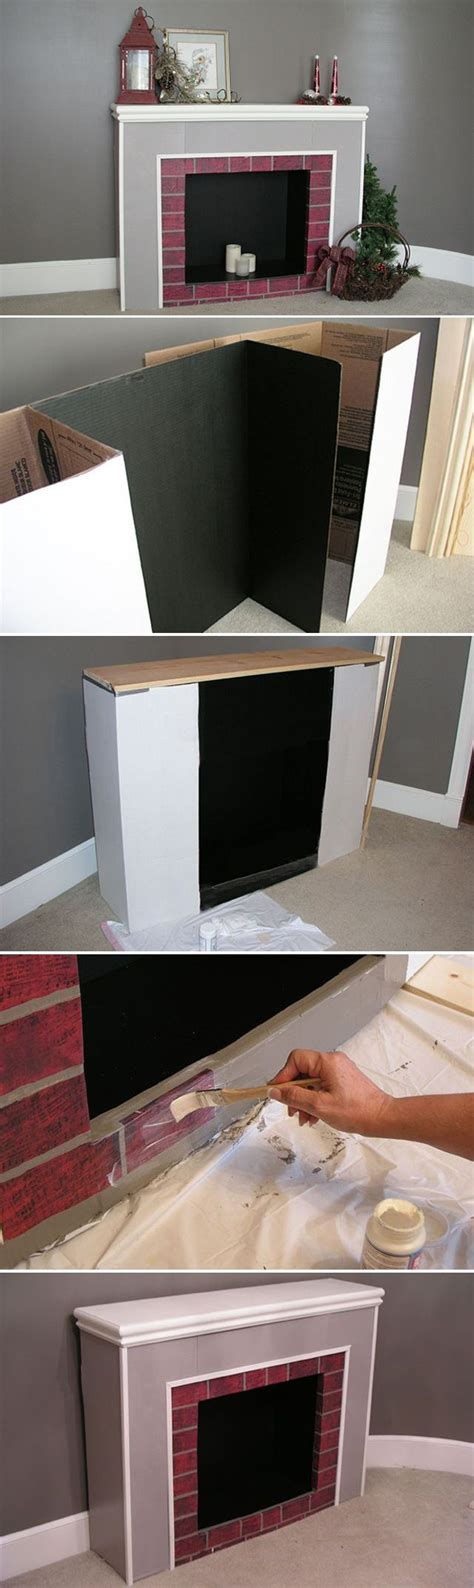 cardboard fireplace diy cardboard fireplace on cardboard furniture coloring pages and cardboard toys